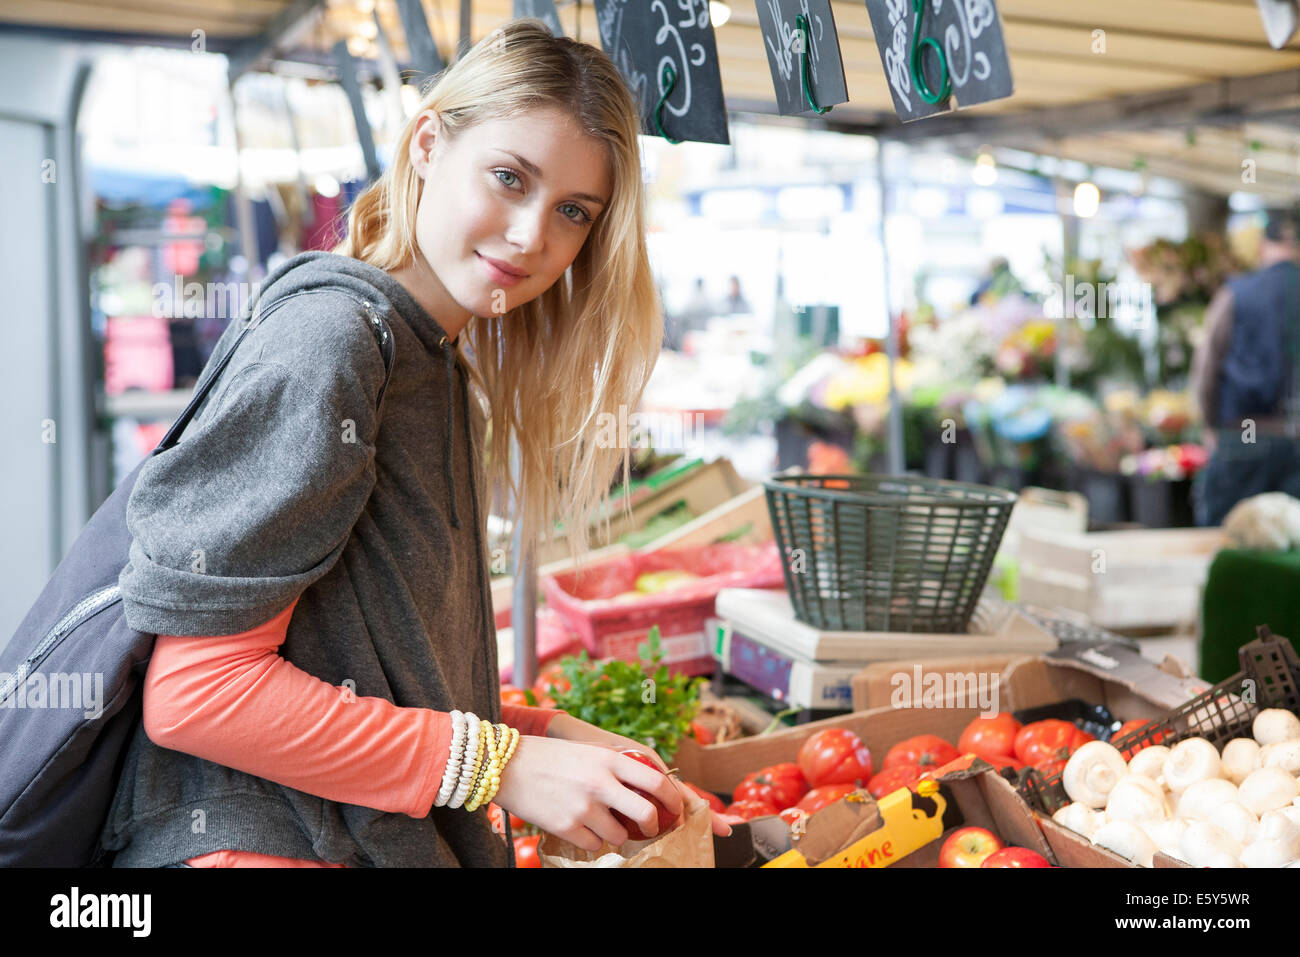 Young woman at greengrocer's shopping for fresh fruits and vegetables - Stock Image